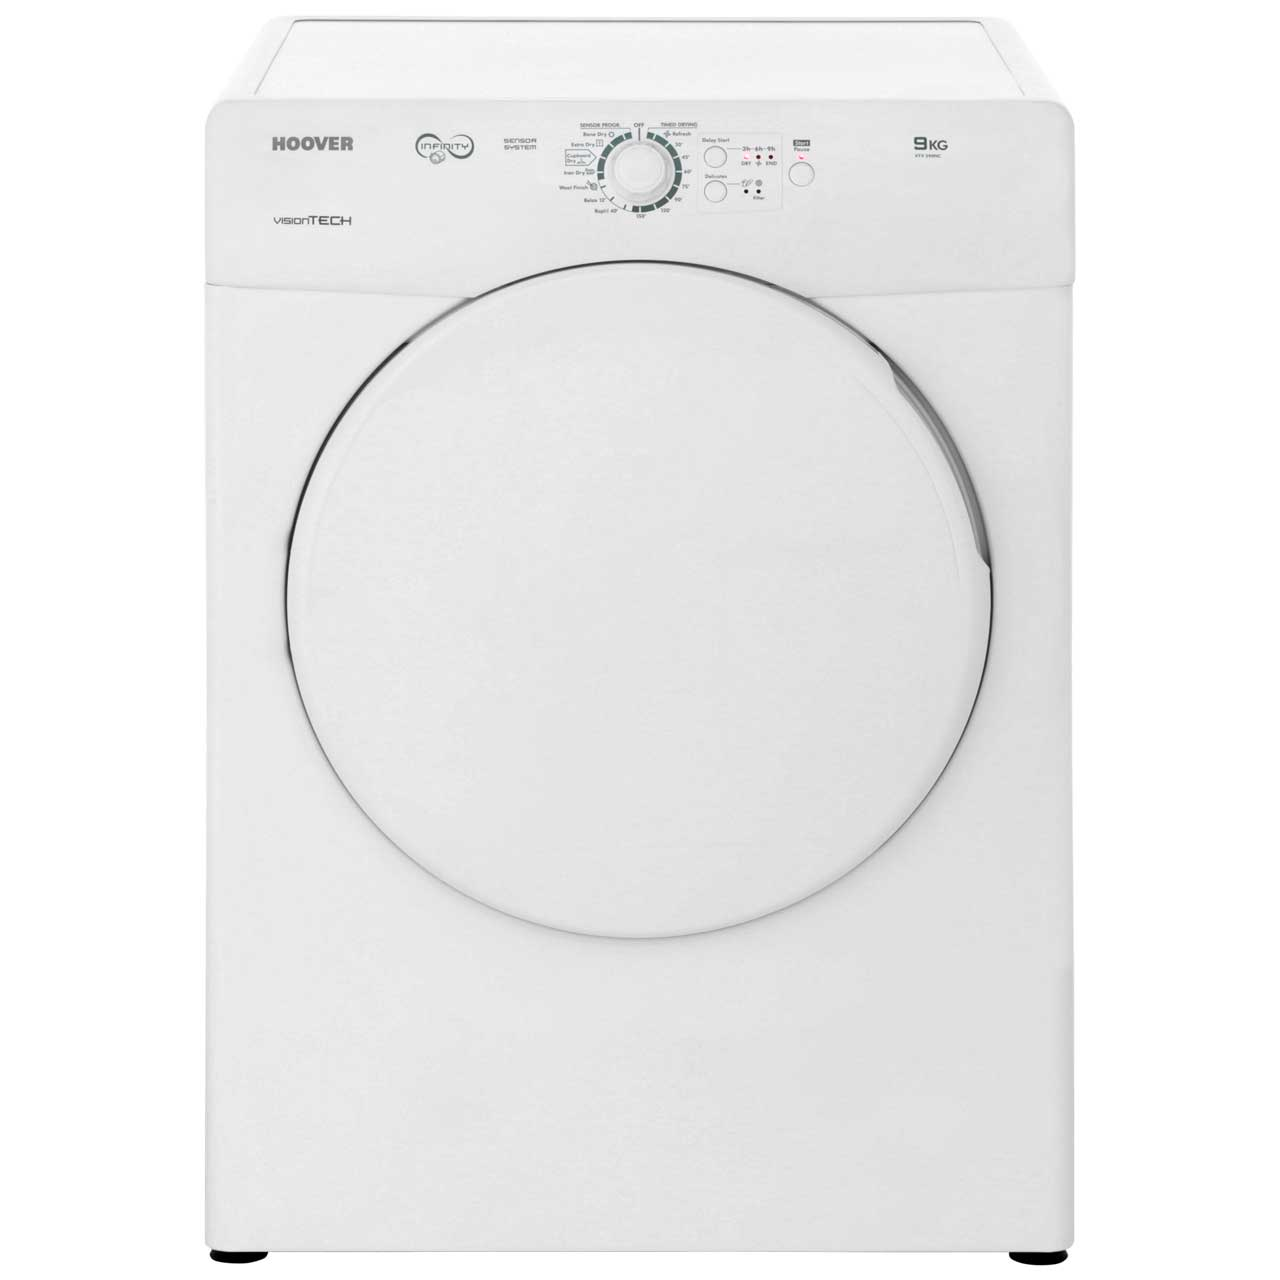 Hoover Vision Tech VTV590NC Free Standing Vented Tumble Dryer in White